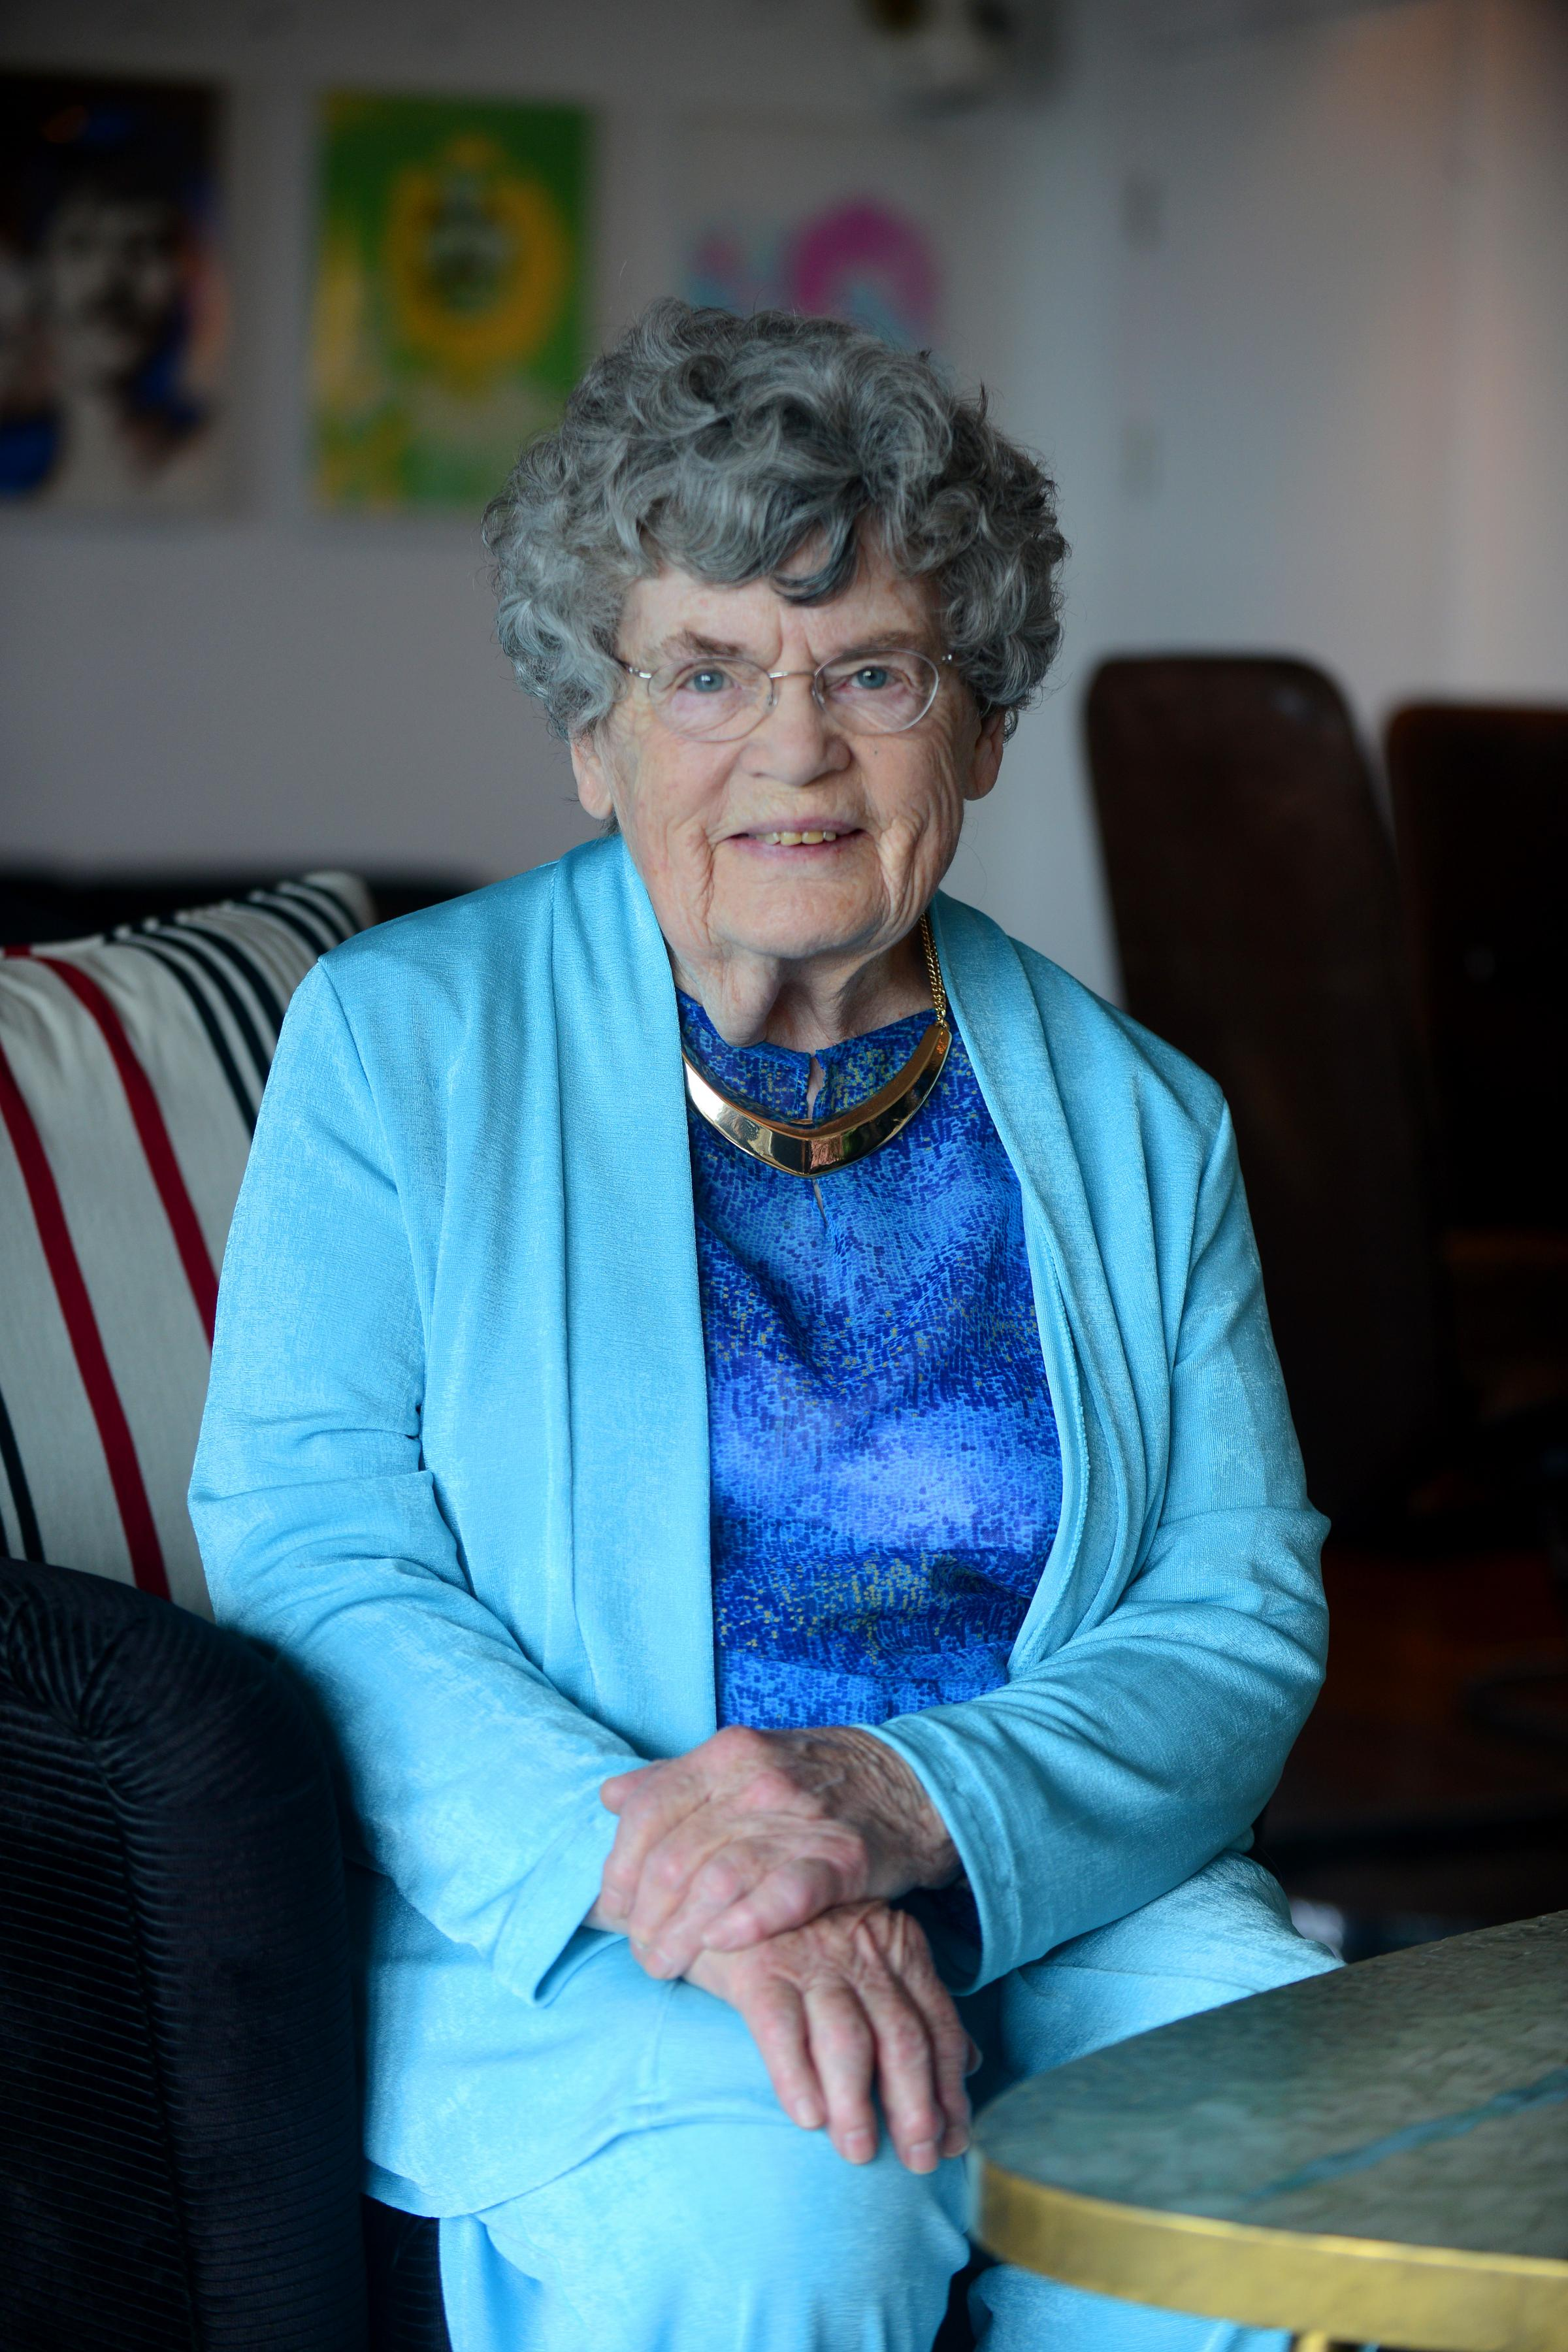 Musical Muriel celebrates 70 years as an accompanist